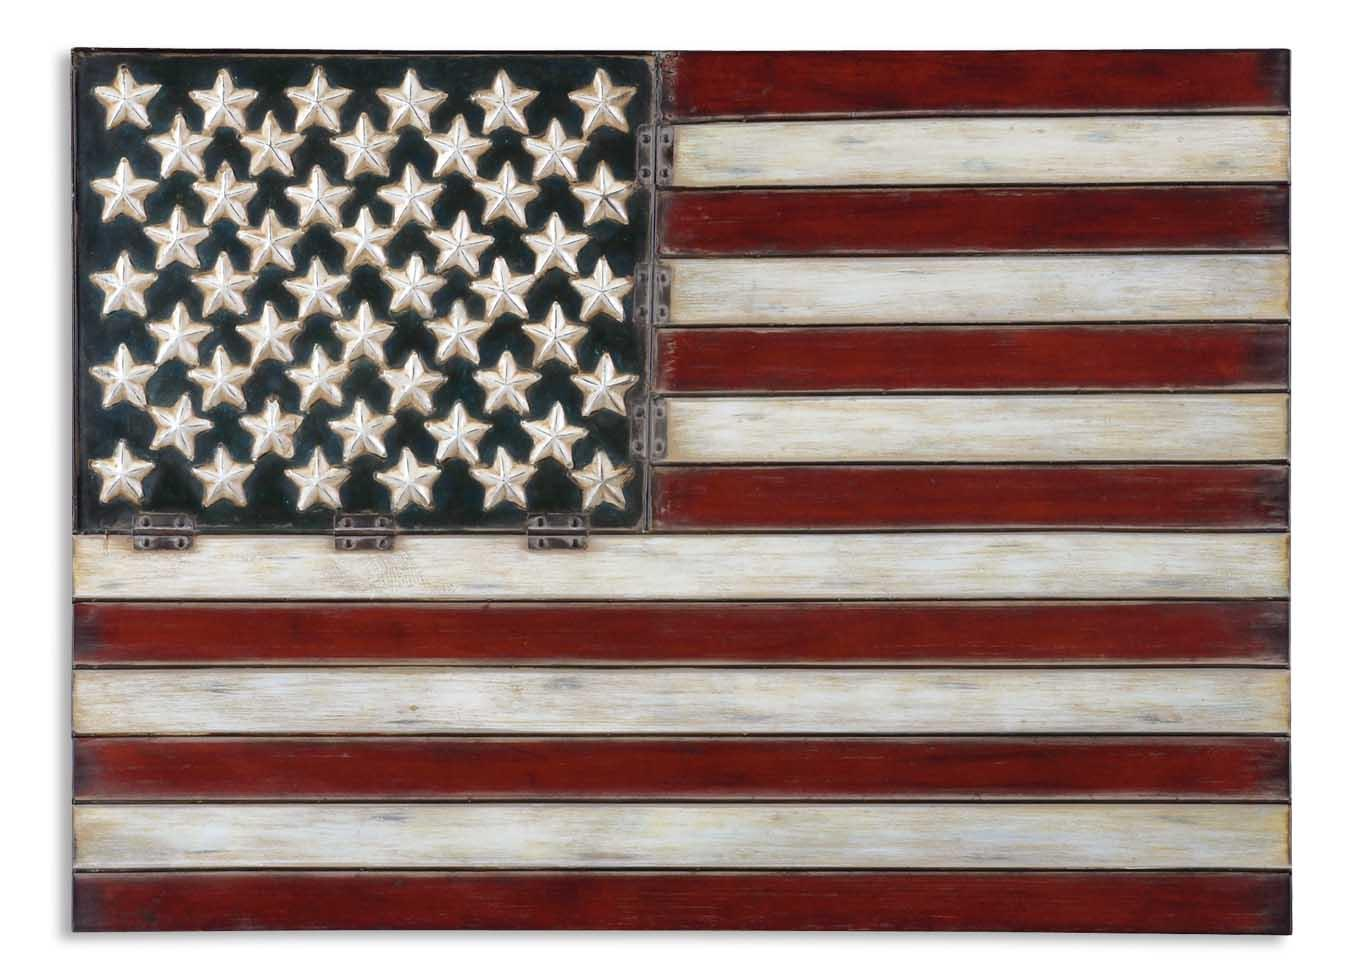 Uttermost Alternative Wall Decor American Flag - Item Number: 13480